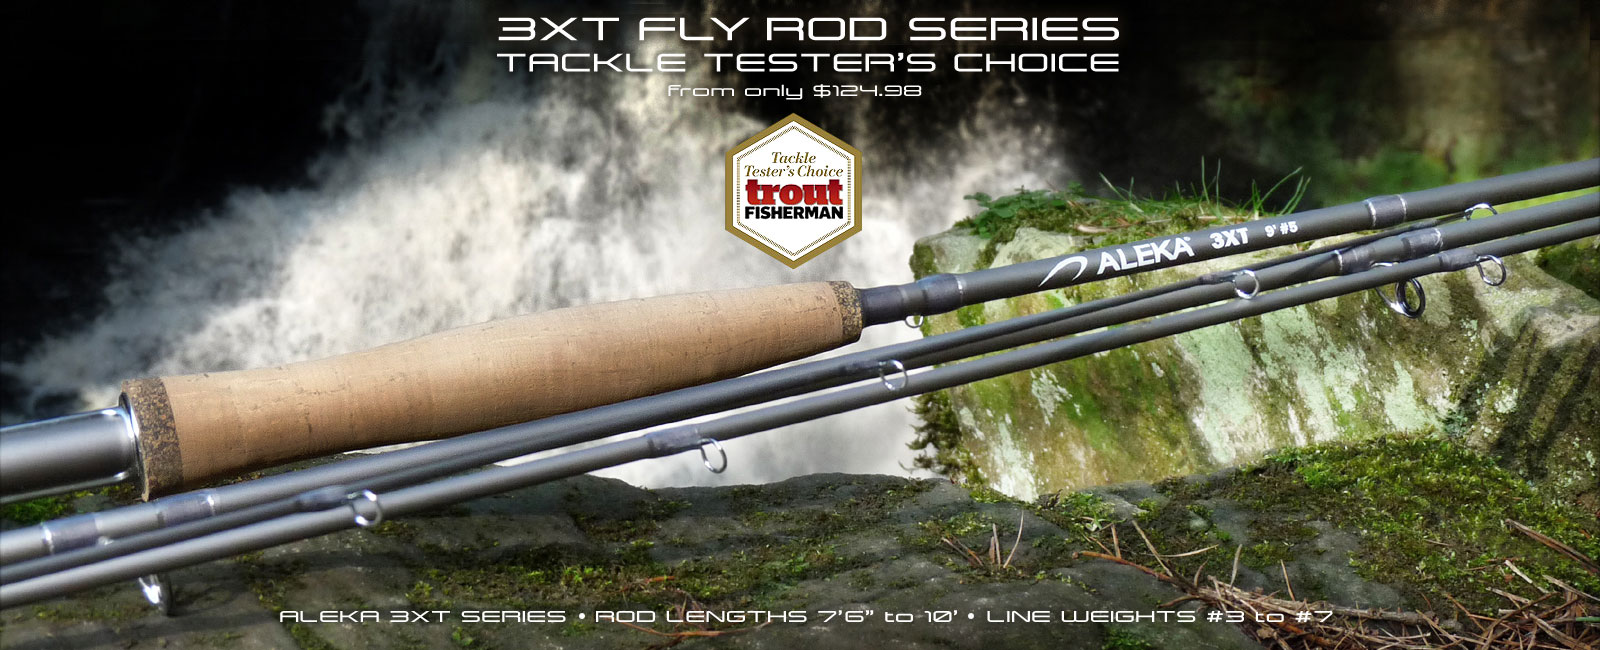 ALEKA 3XT Fly Rod Series